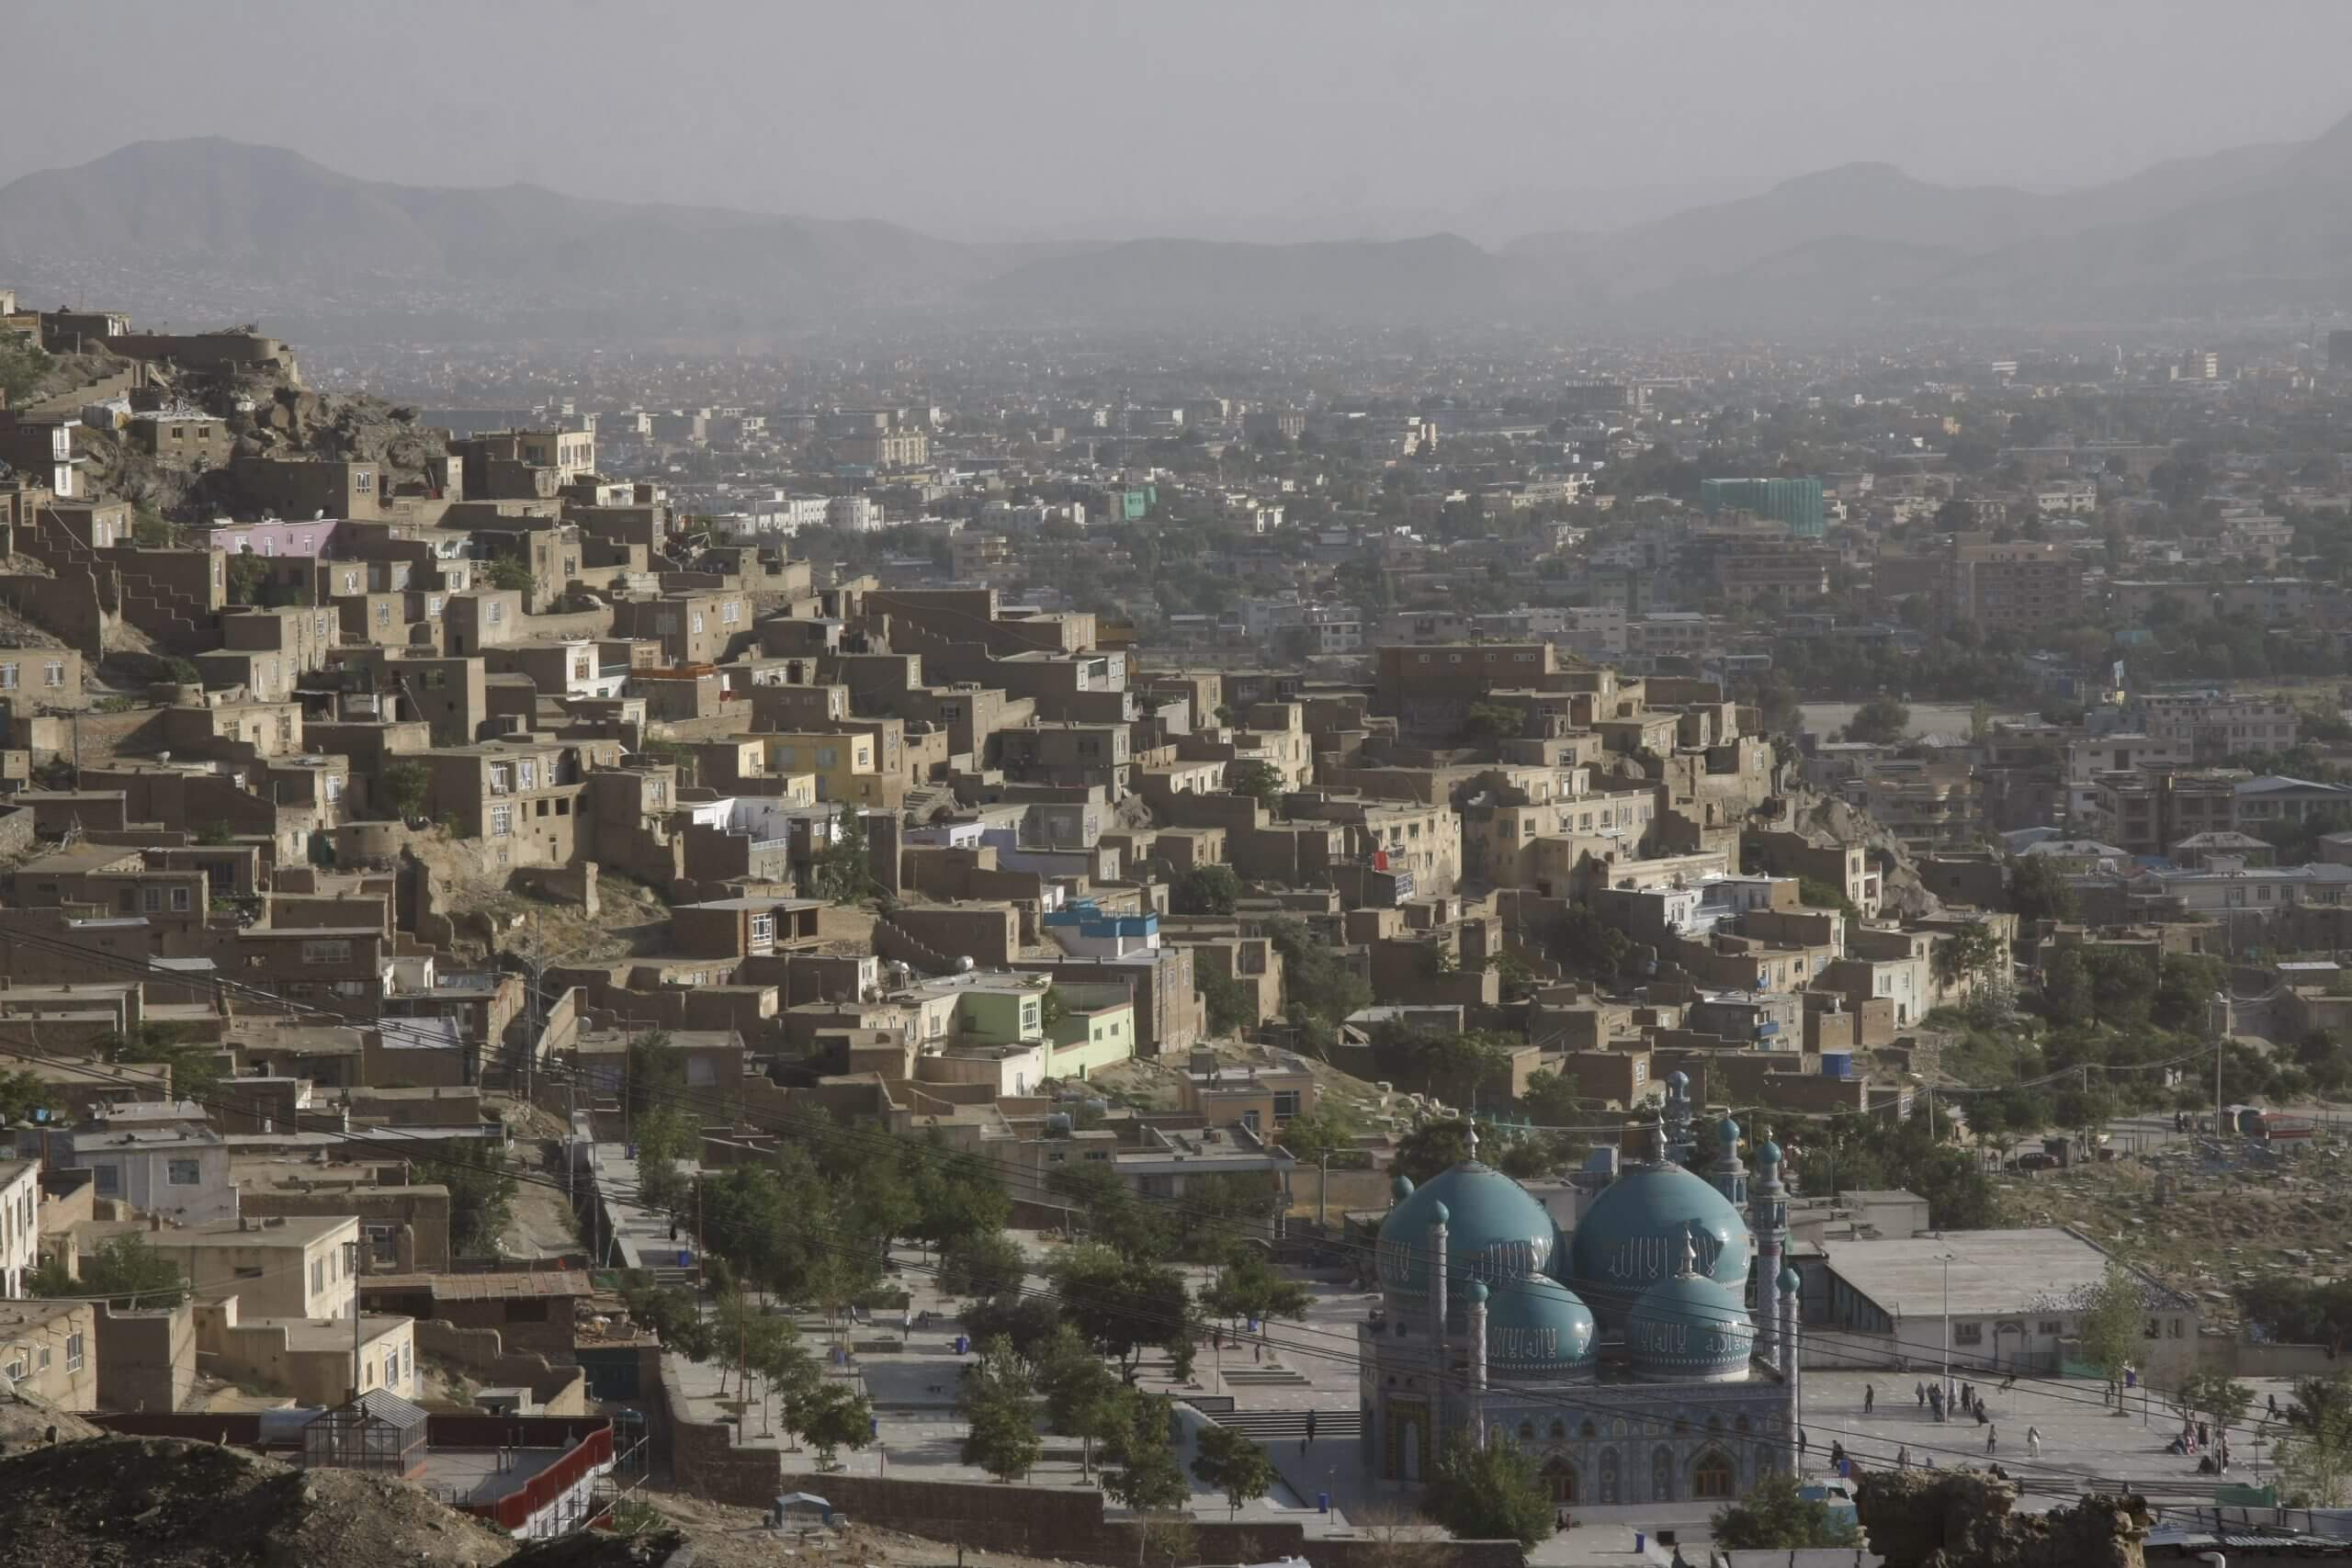 Taliban – A Mentality Not an Ethnicity: A Ground Report from Afghanistan